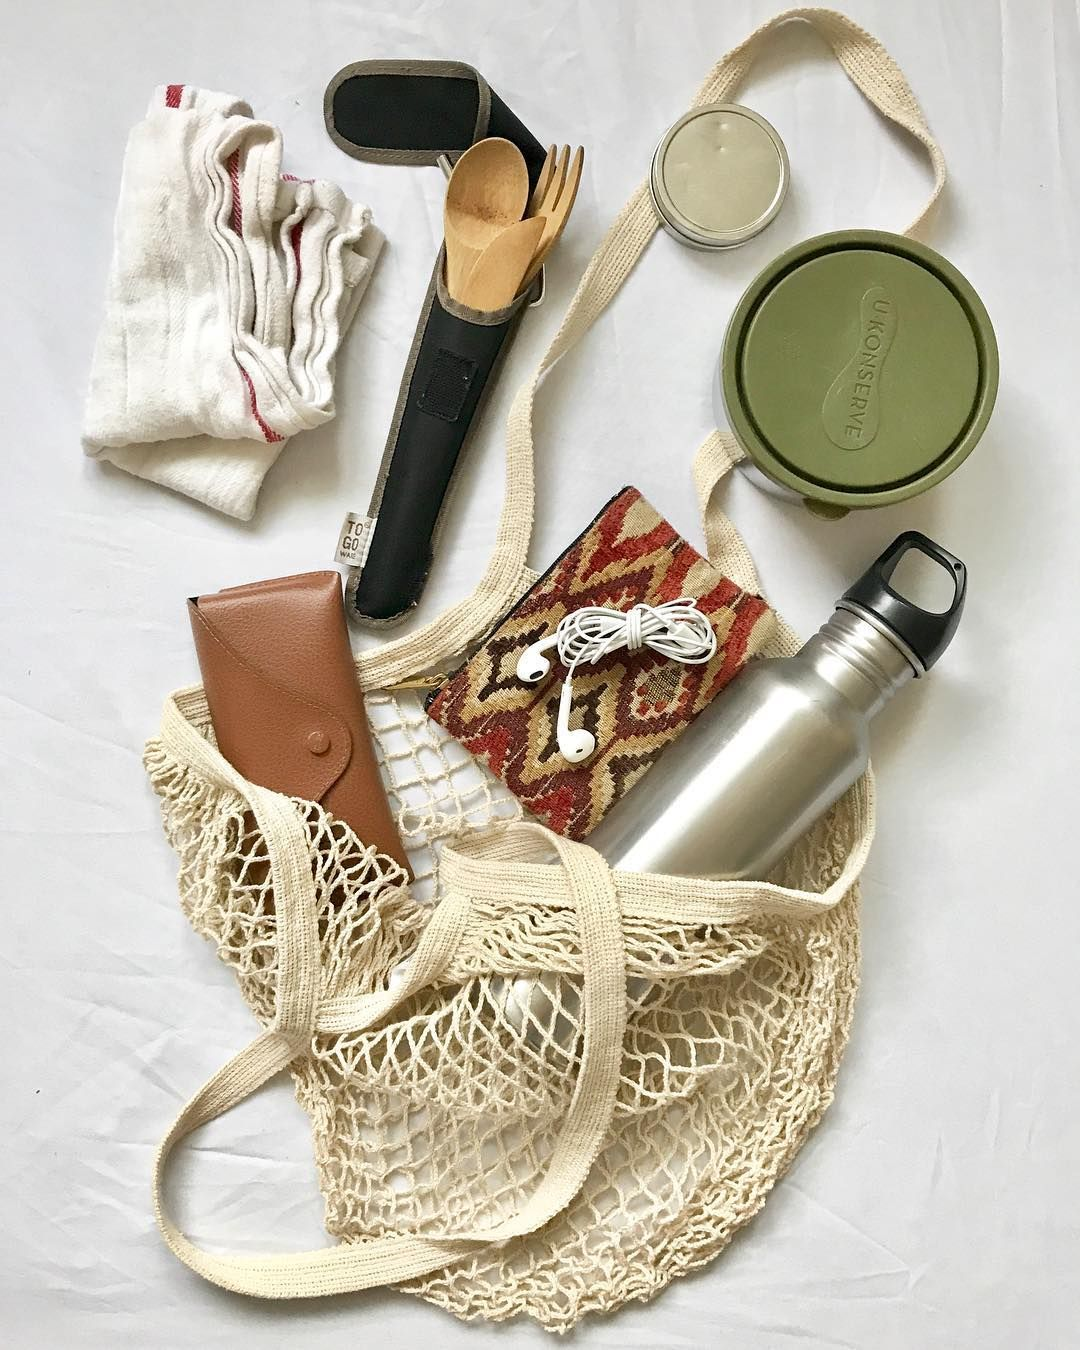 Sustainyoself Zero Waste On The Go Essentials What You See Here Is What I Always Carry In My Bag Steel Wat Zéro Déchet Mode De Vie Durable Site De Deco